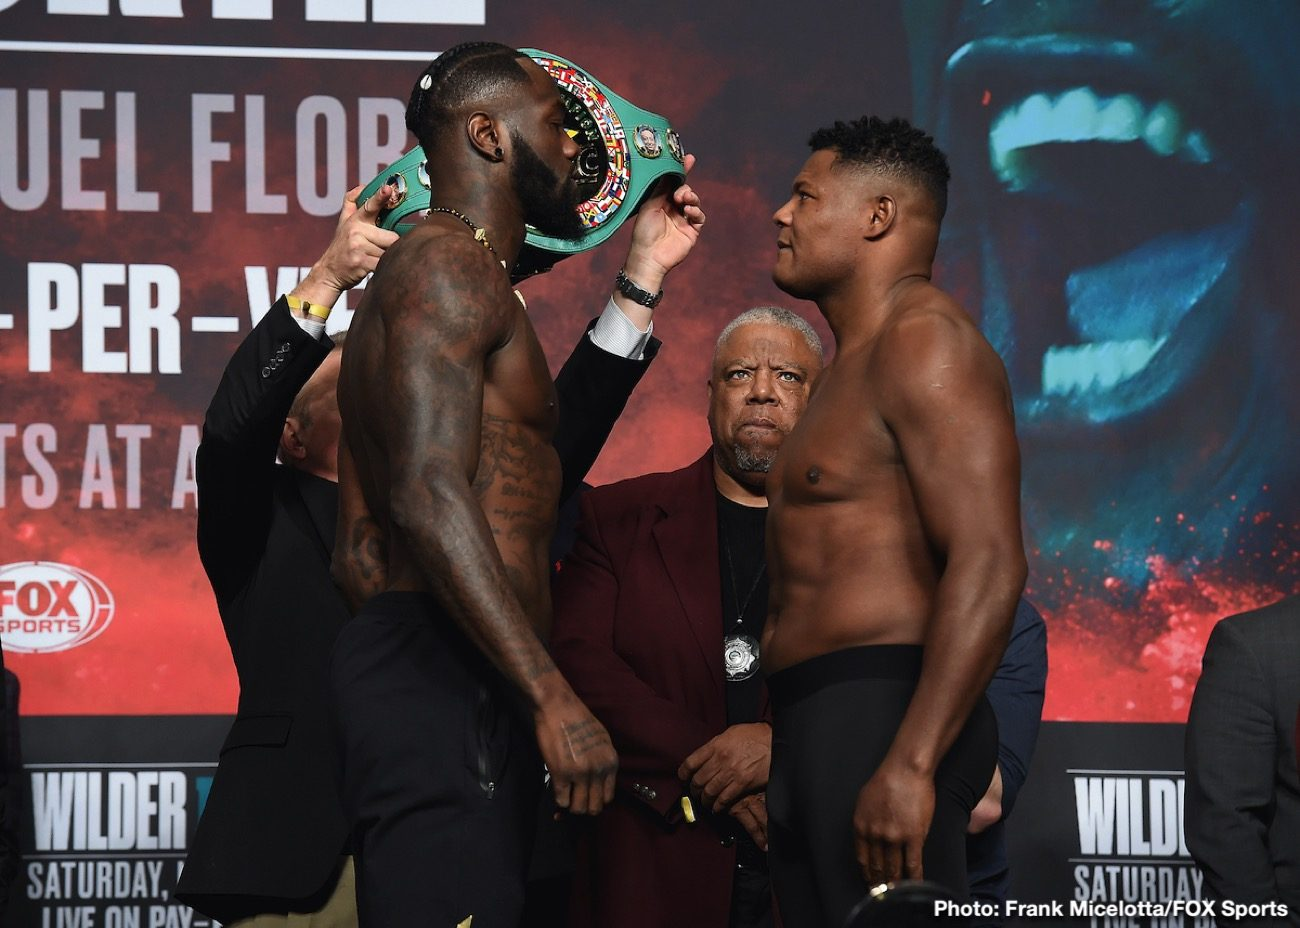 Deontay Wilder Fox Sports Pay-Per-View Luis Ortiz Boxing News Top Stories Boxing